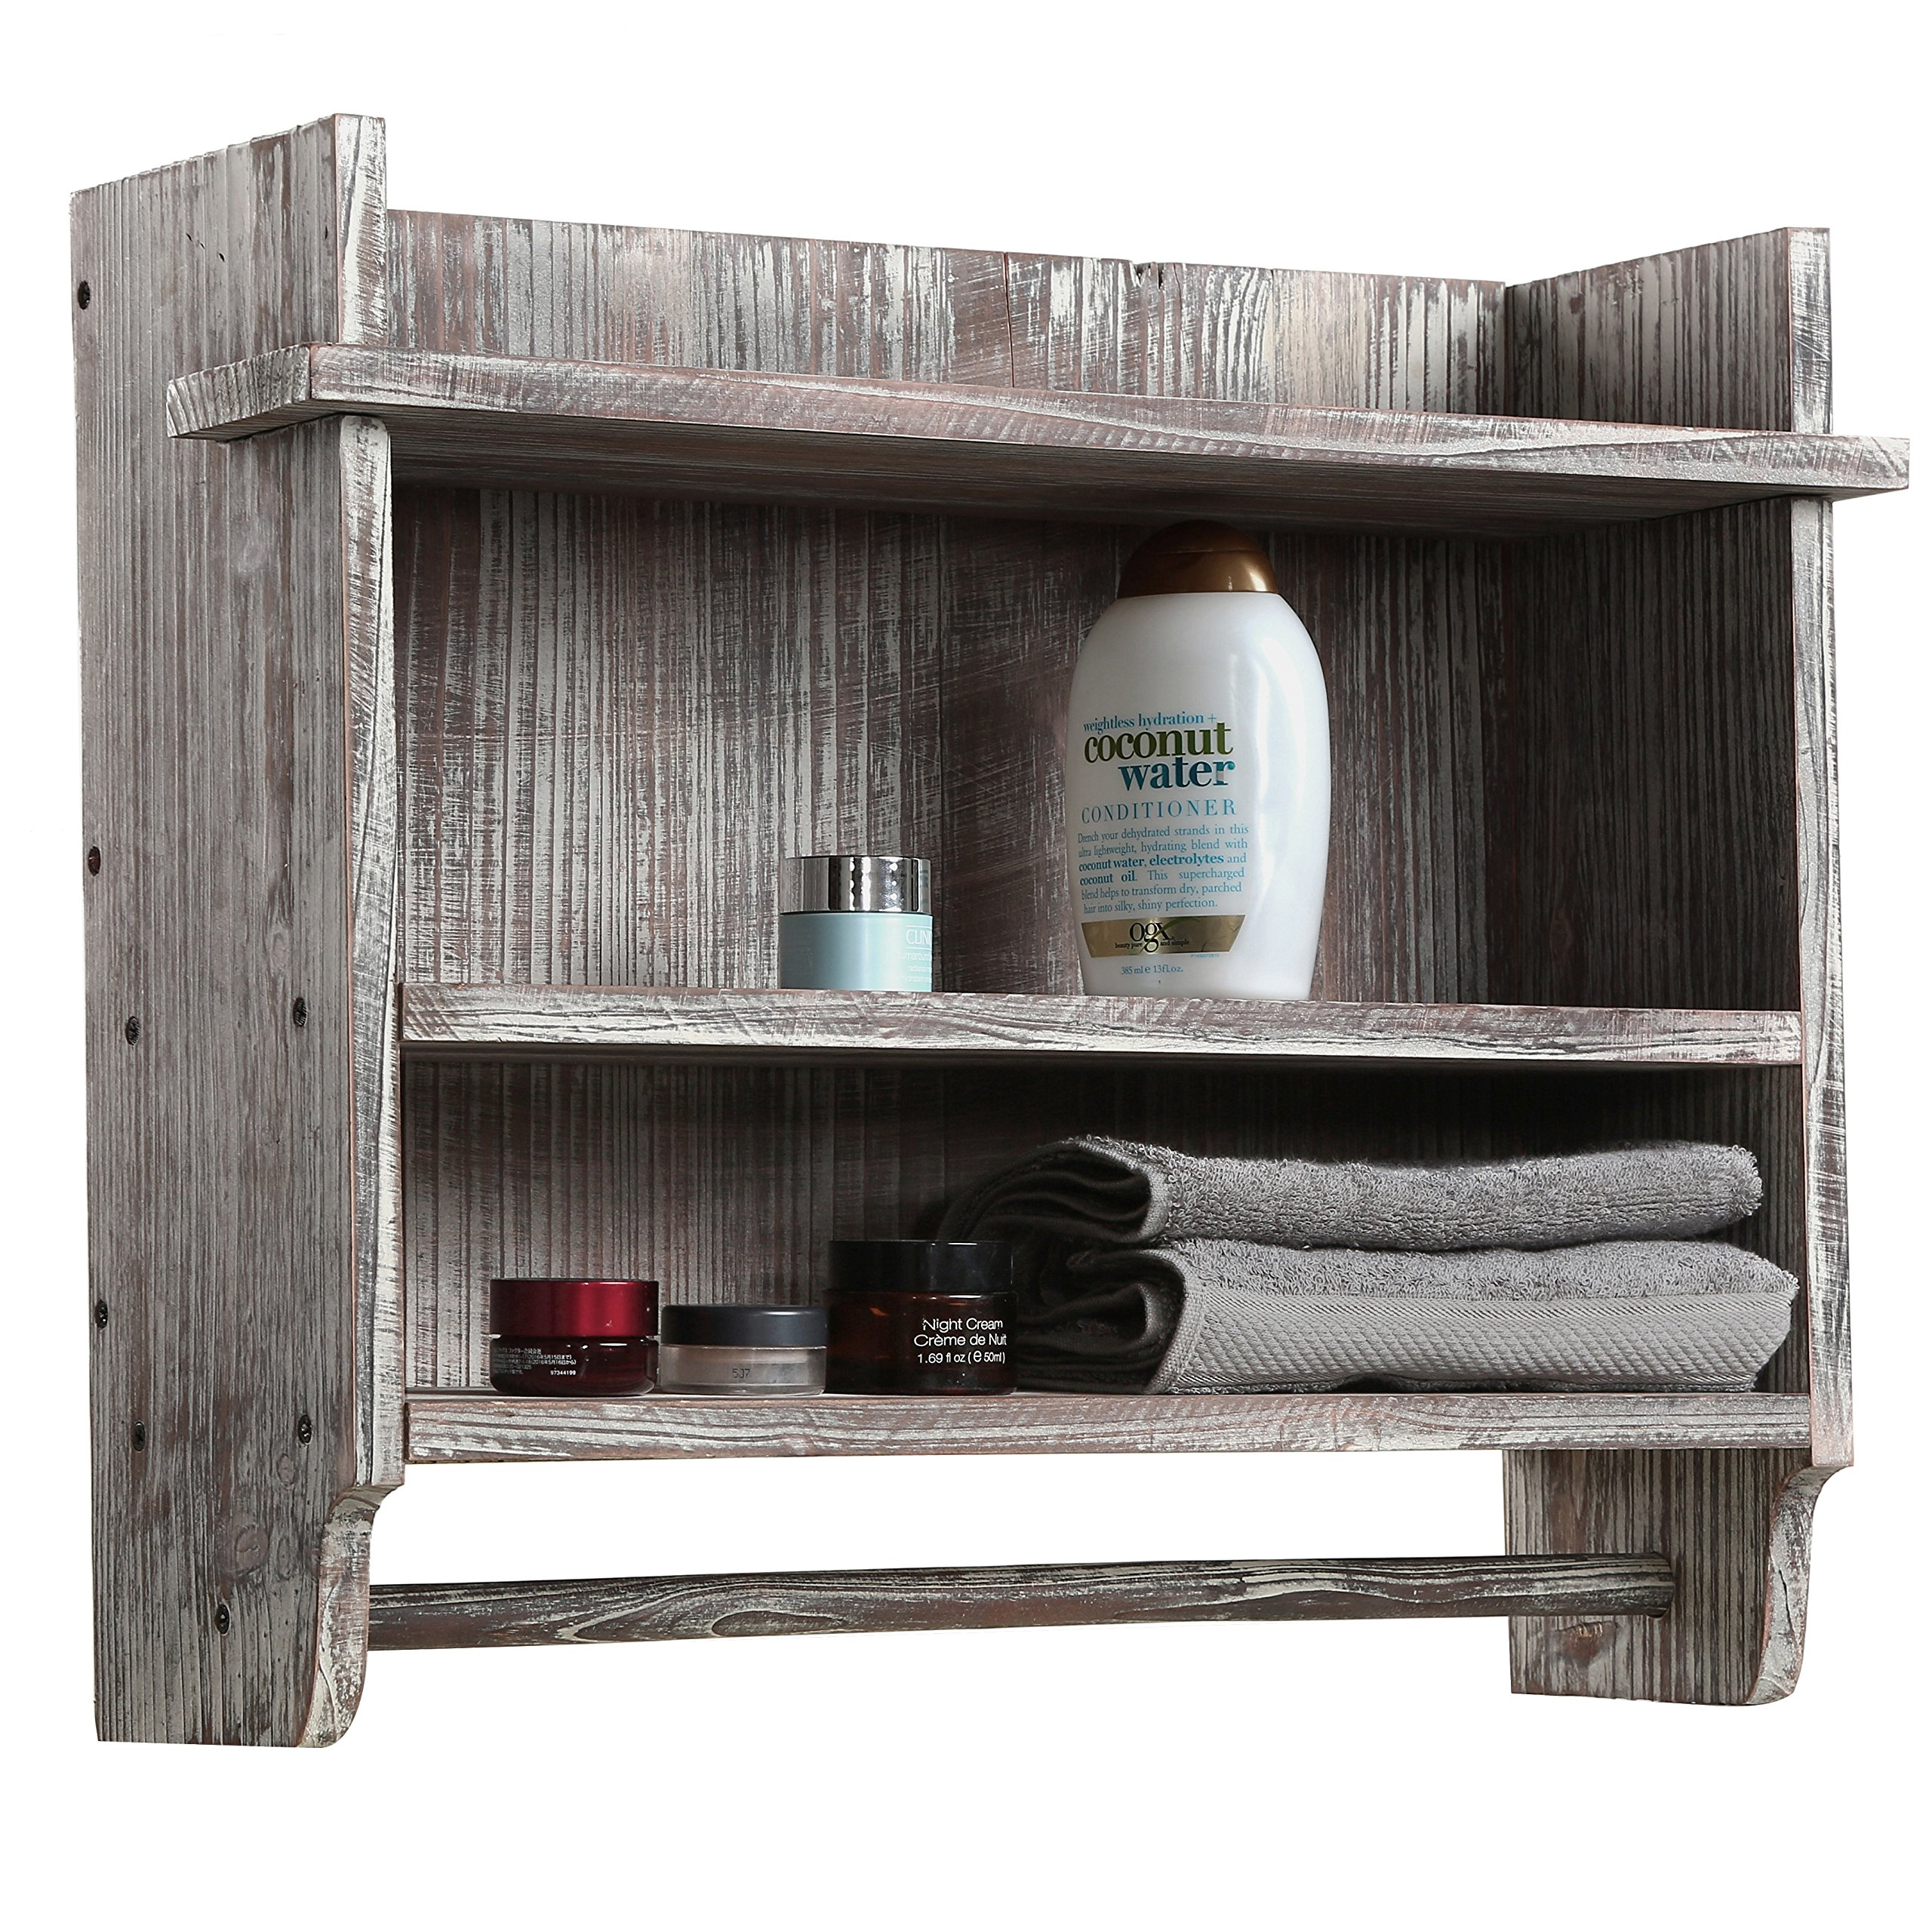 MyGift Wall Mounted Torched Wood Bathroom Organizer Rack with 3 Shelves and Hanging Towel Bar by MyGift